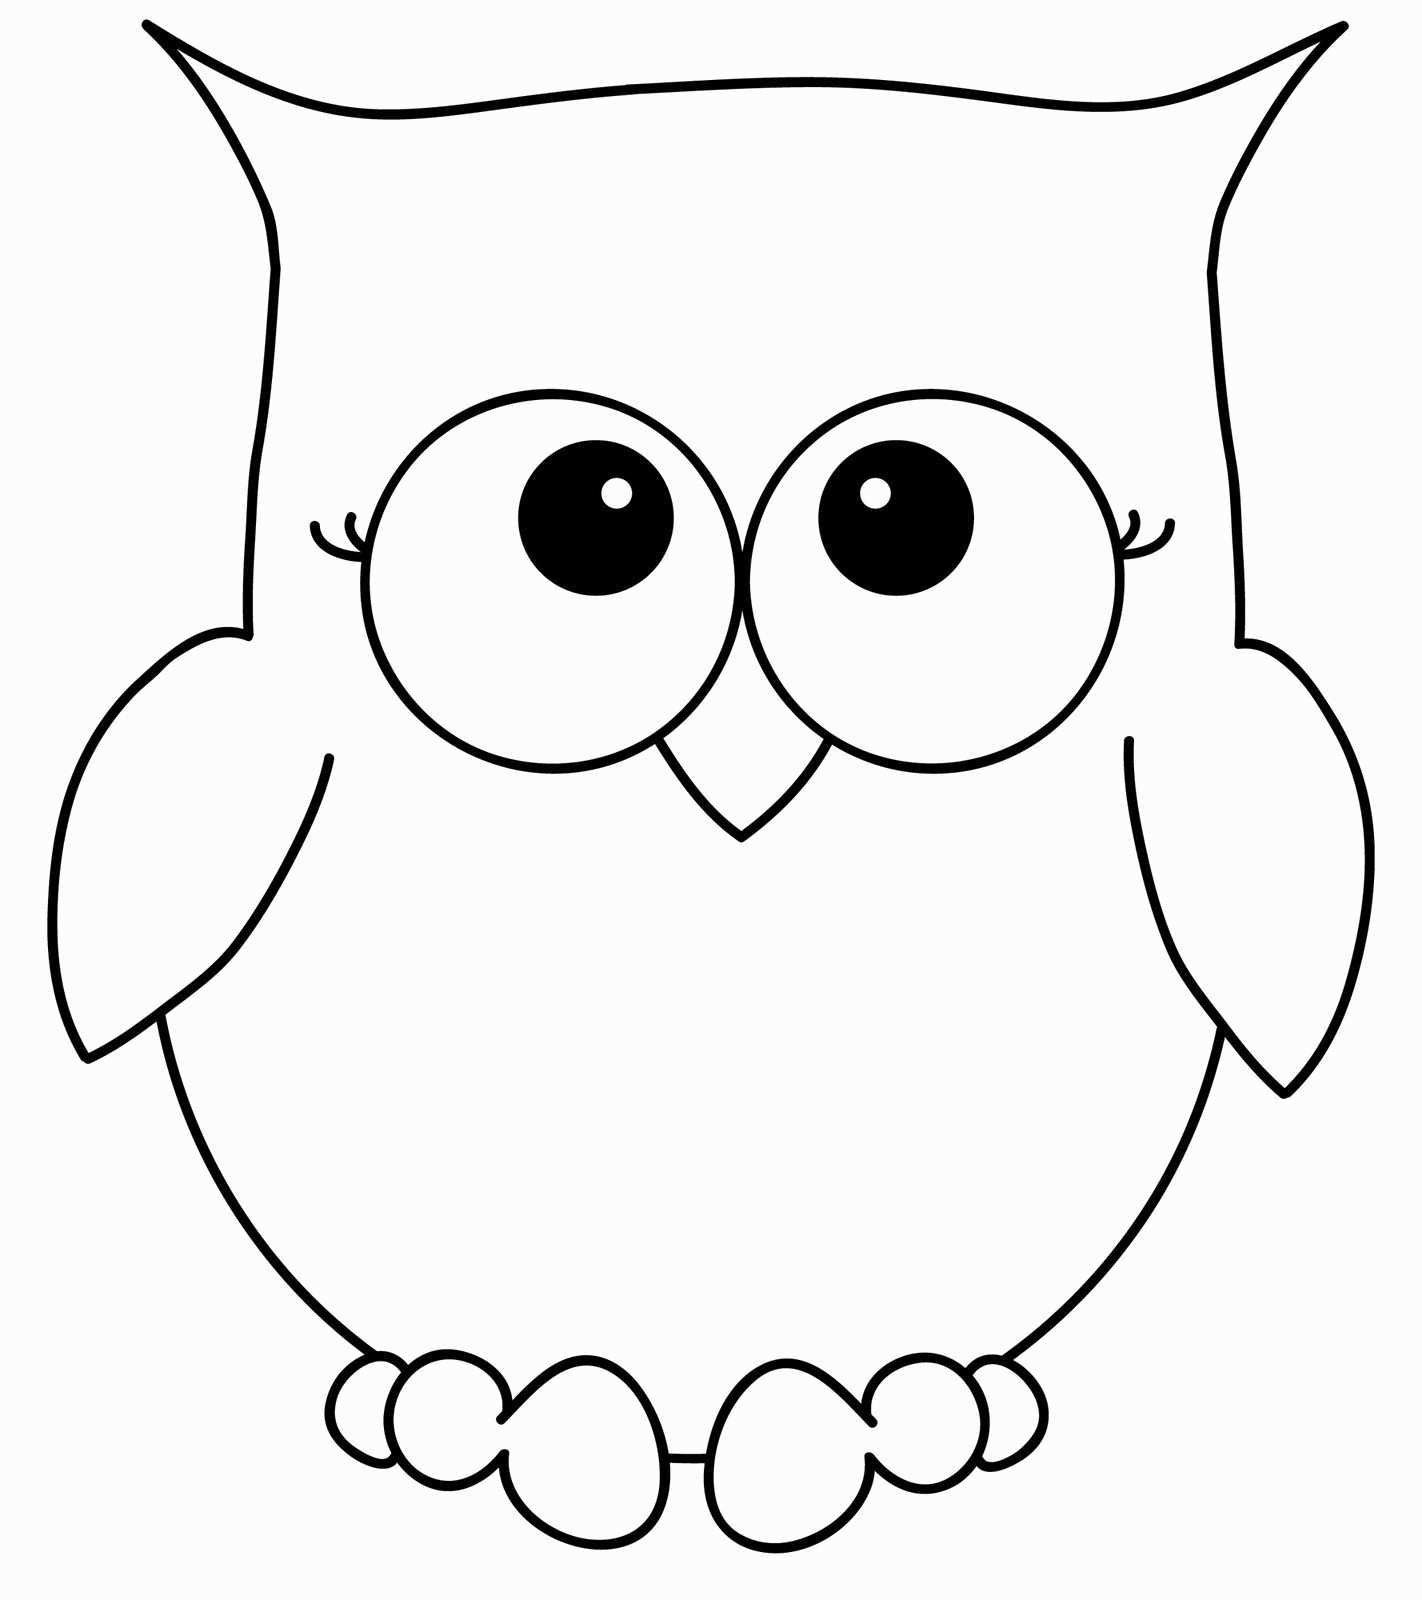 Wonderful Image Of Owls Coloring Pages Owl Coloring Pages Owl